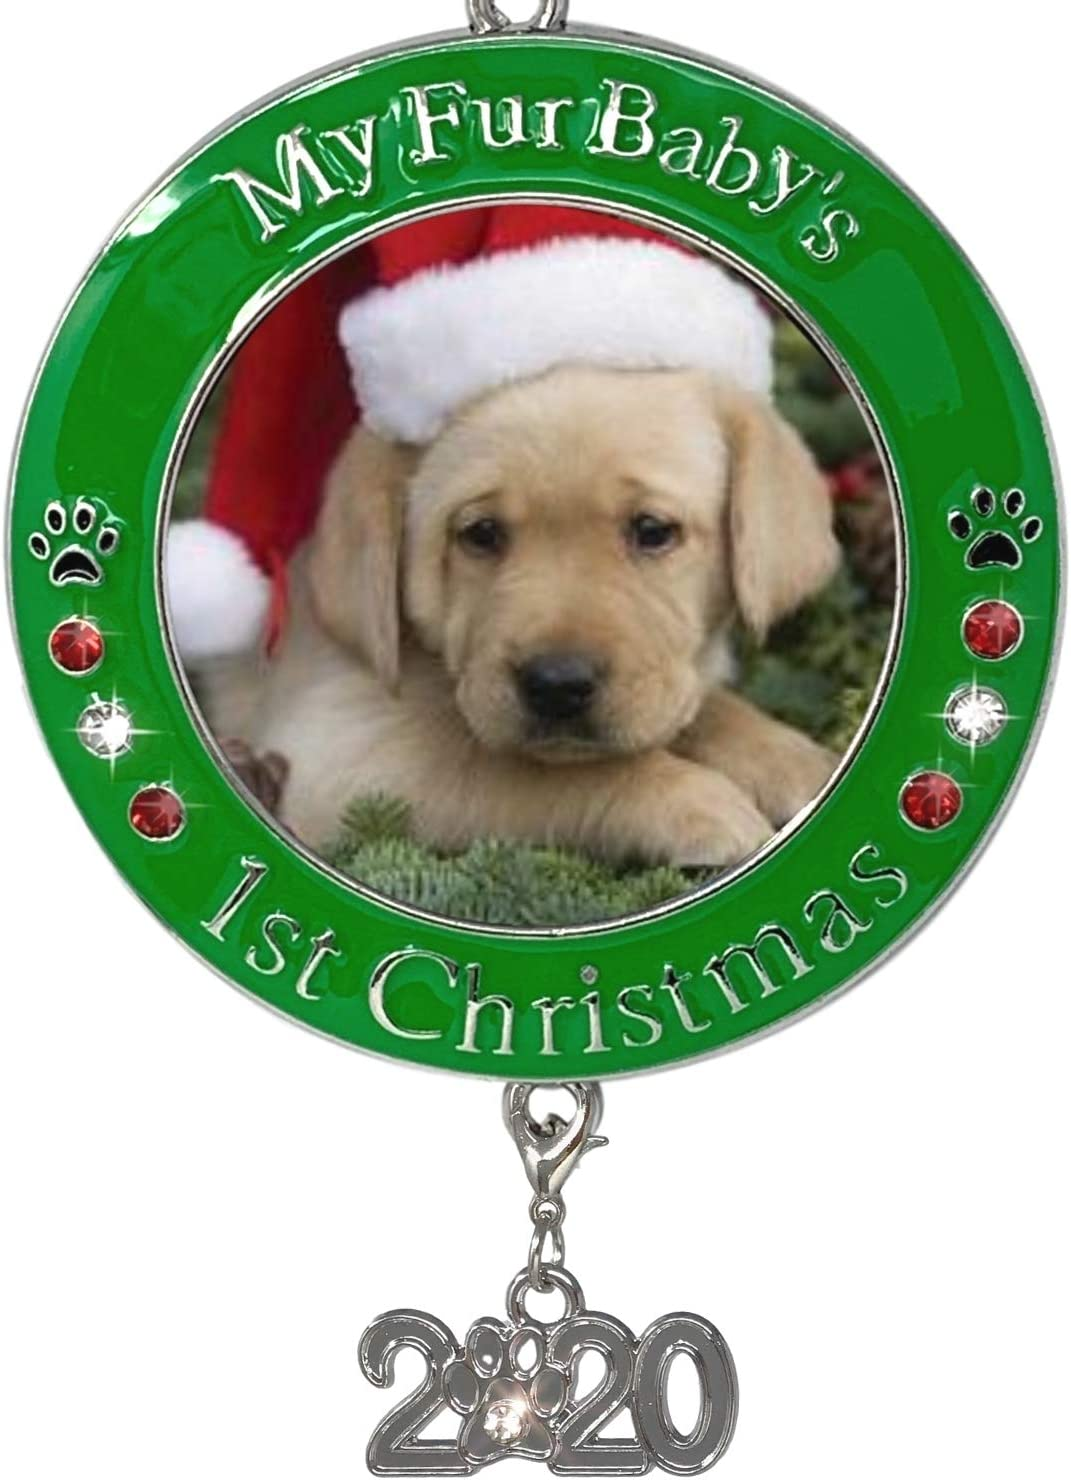 Puppy For Christmas 2020 Amazon.com: BANBERRY DESIGNS Pet's First Christmas 2020   Photo